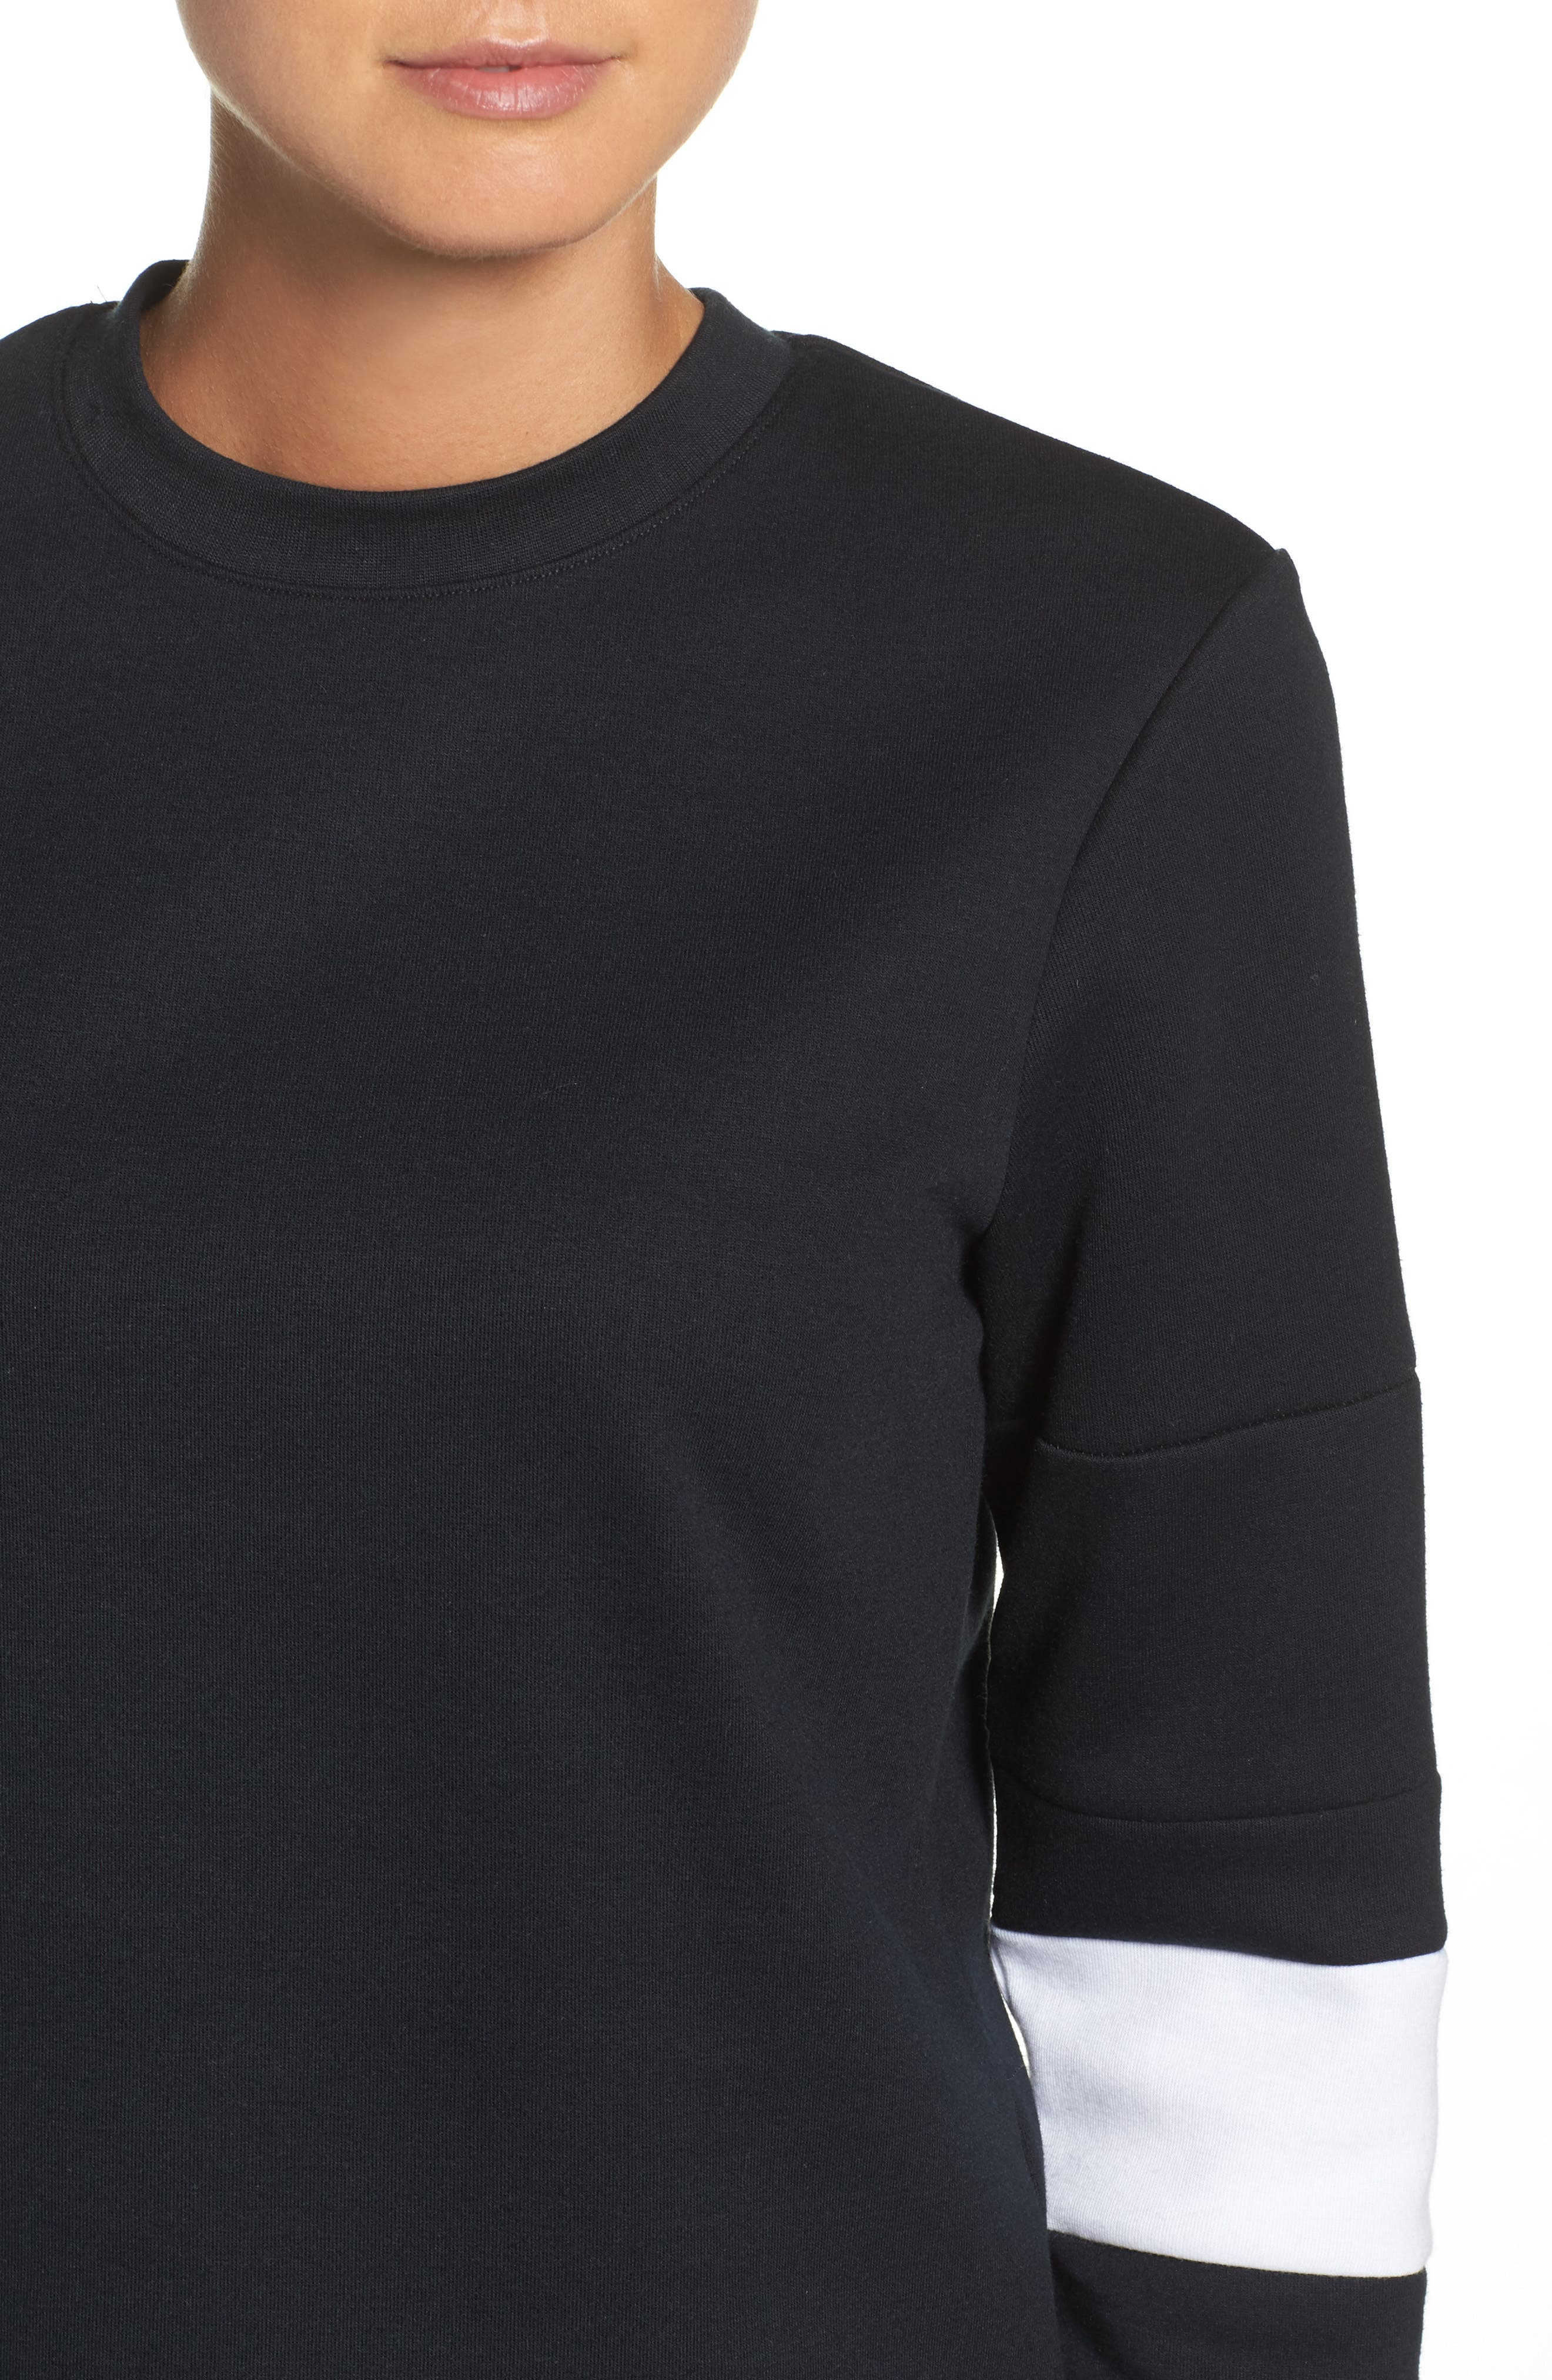 Colorblock Crewneck Top,                             Alternate thumbnail 4, color,                             BLACK